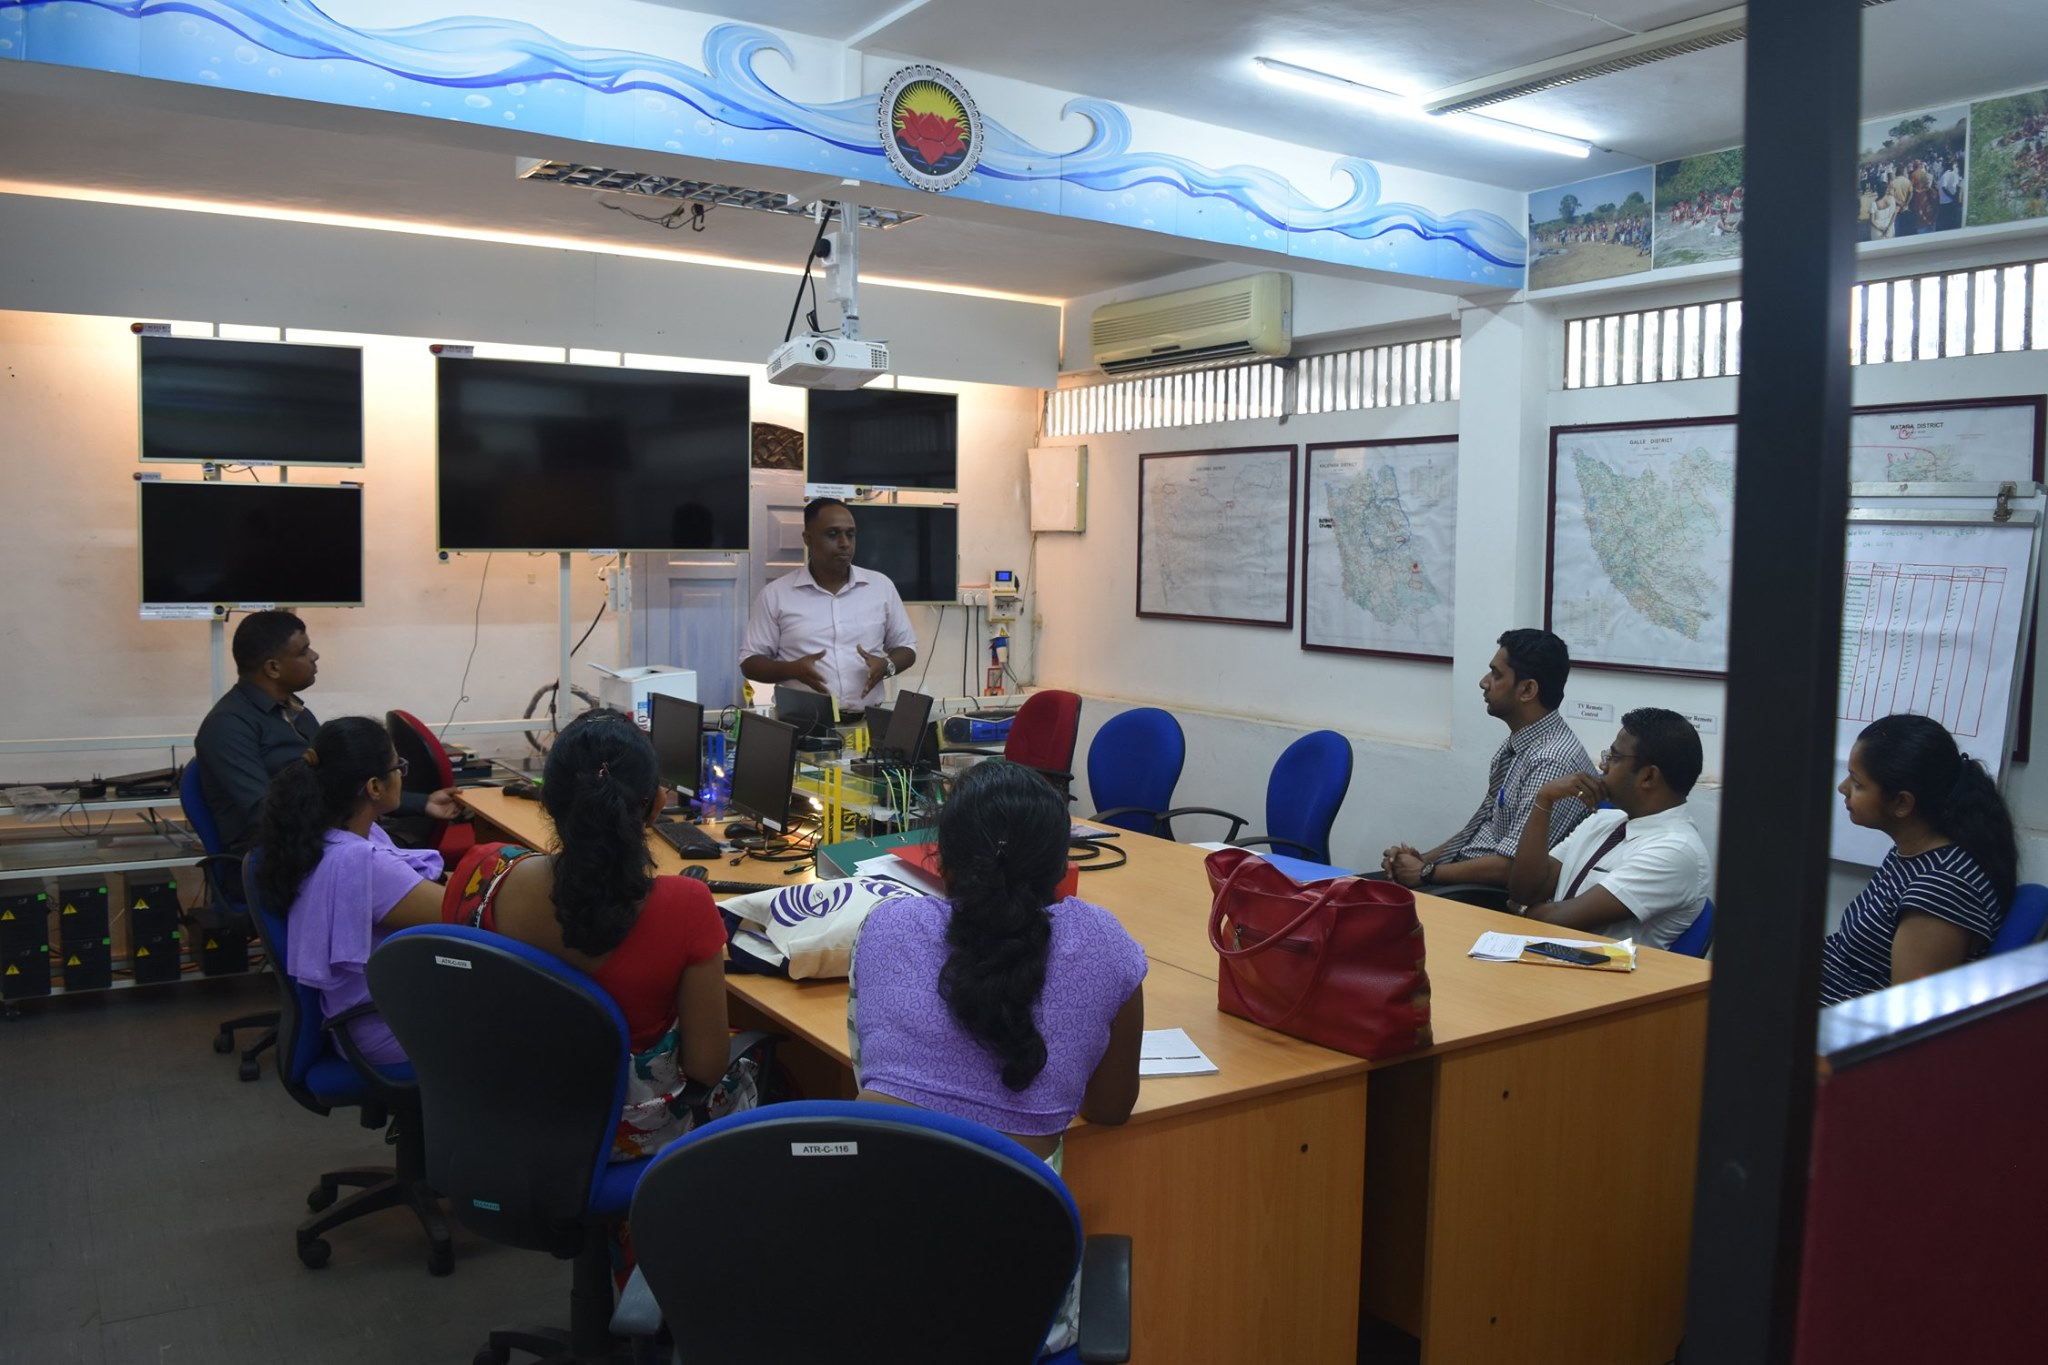 Sarvodaya's Public Health Initiatives Seminar for MSc Community Medicine Medical Professionals attached to the National Insitute of Health Sciences, Kalutara